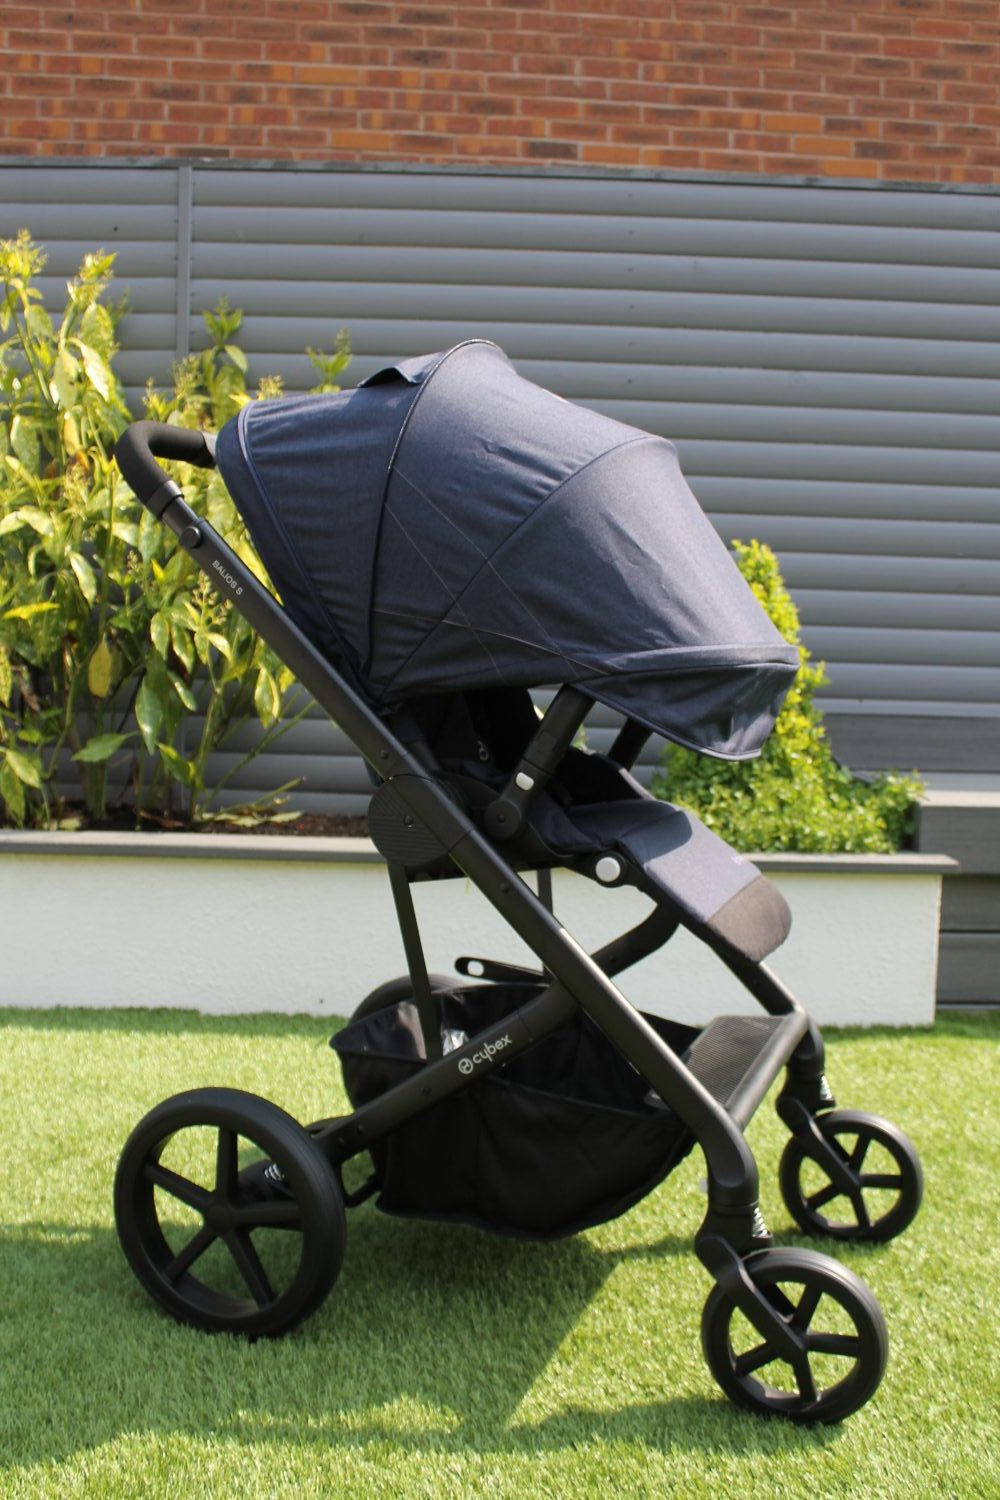 Cybex Balios S 3-in-1 Travel System Review